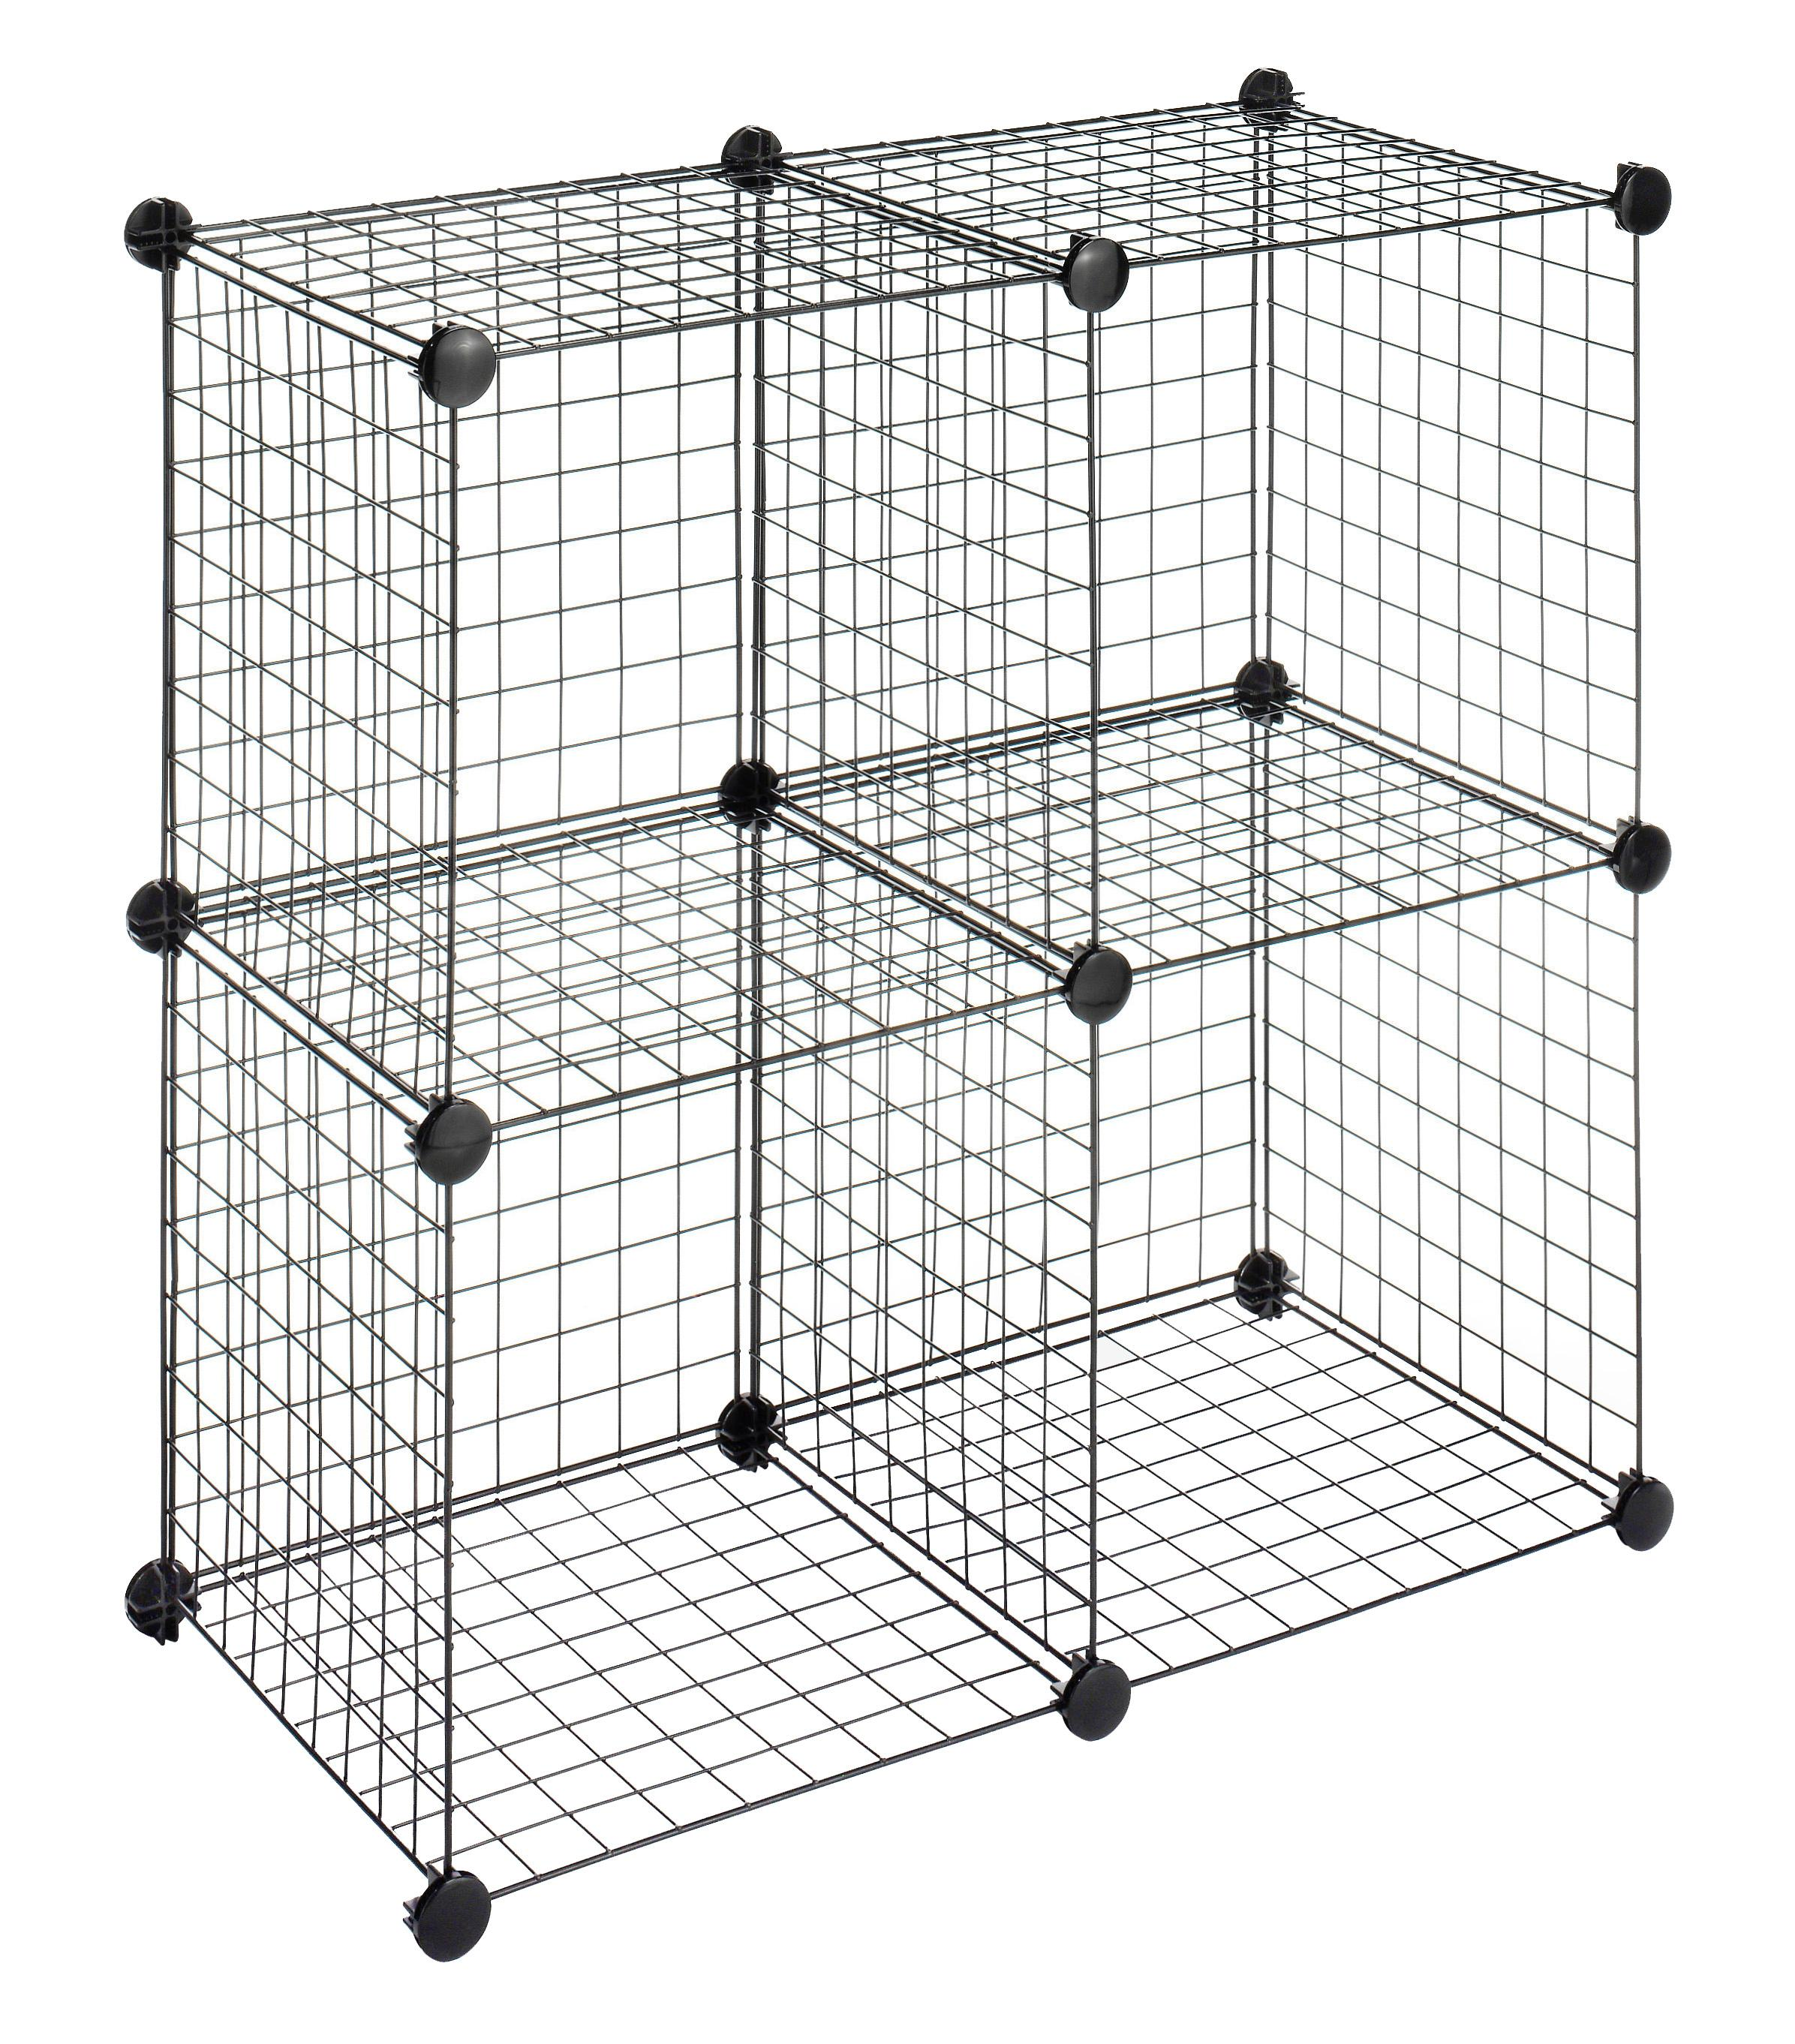 Amazon.com: Whitmor Storage Cubes - Stackable Interlocking Wire ...